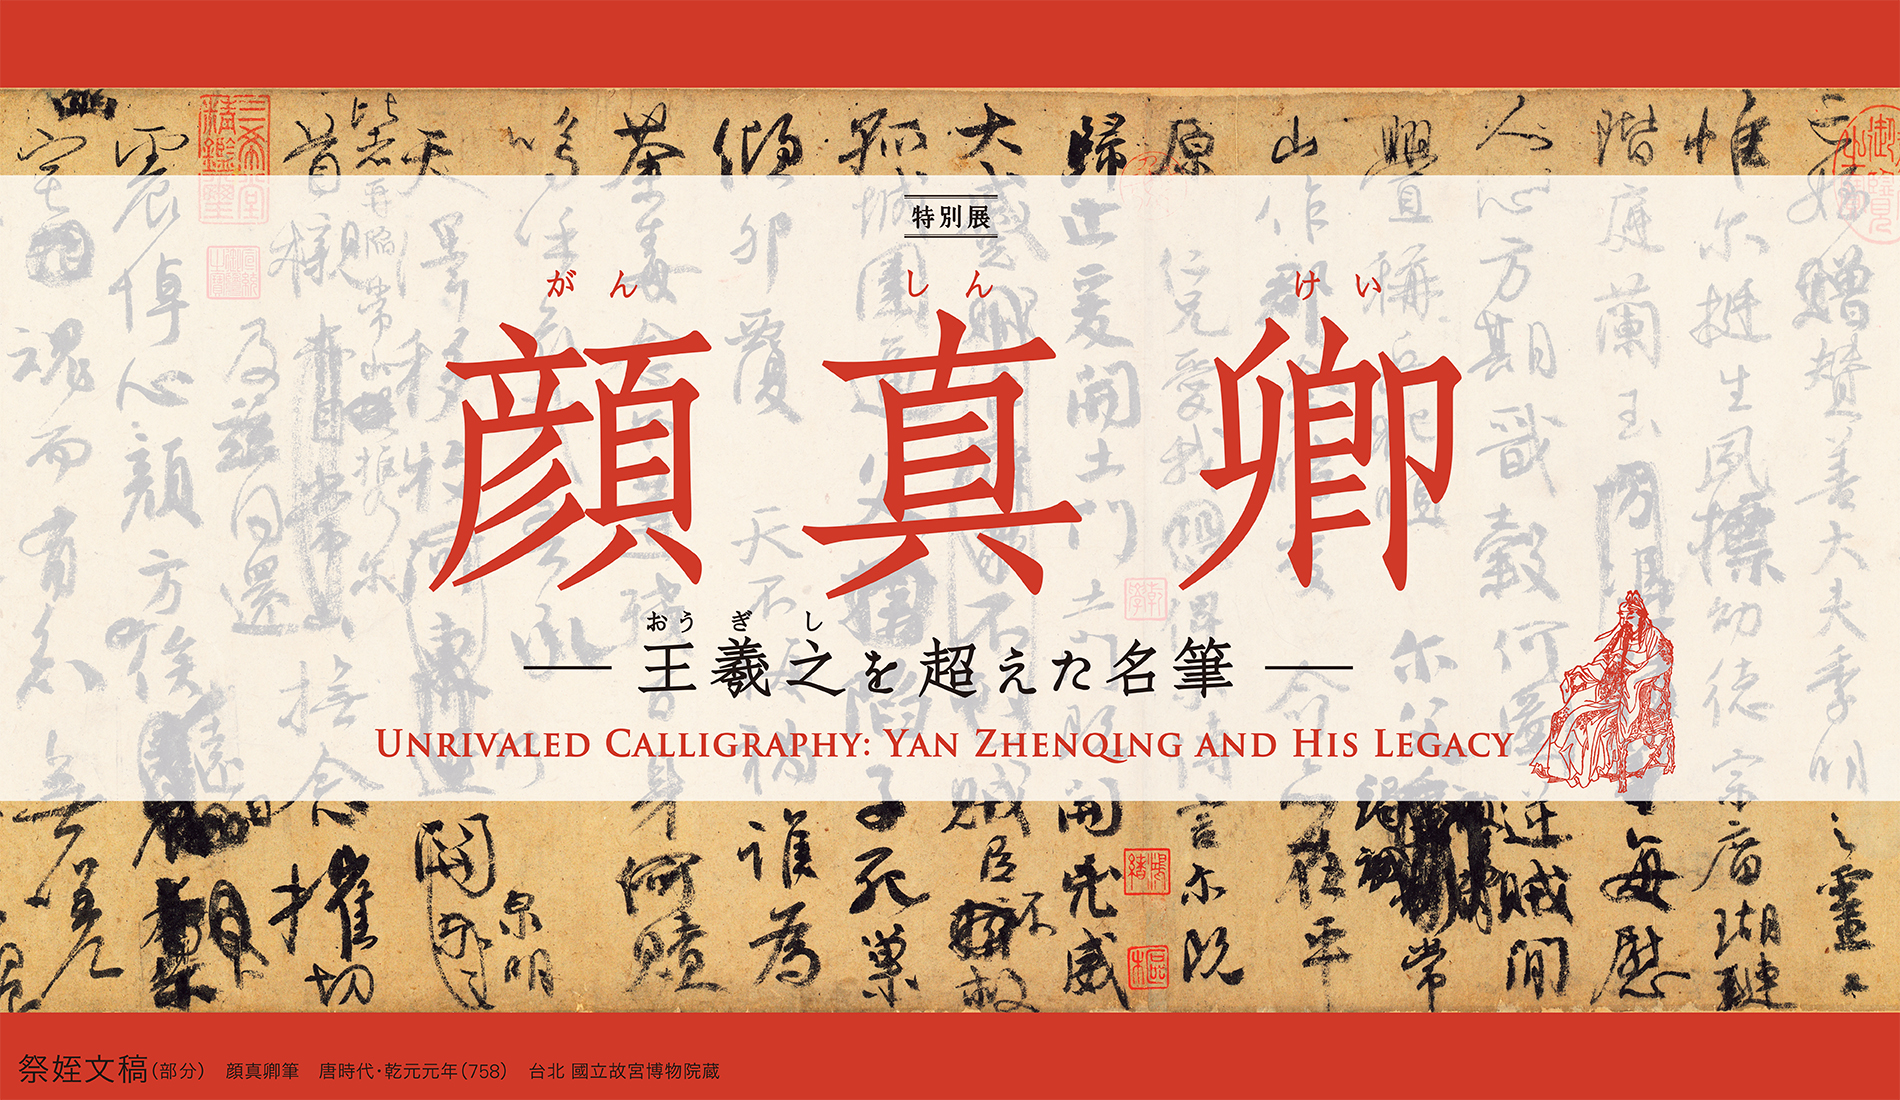 Unrivaled Calligraphy: Yan Zhenqing and His Legacy